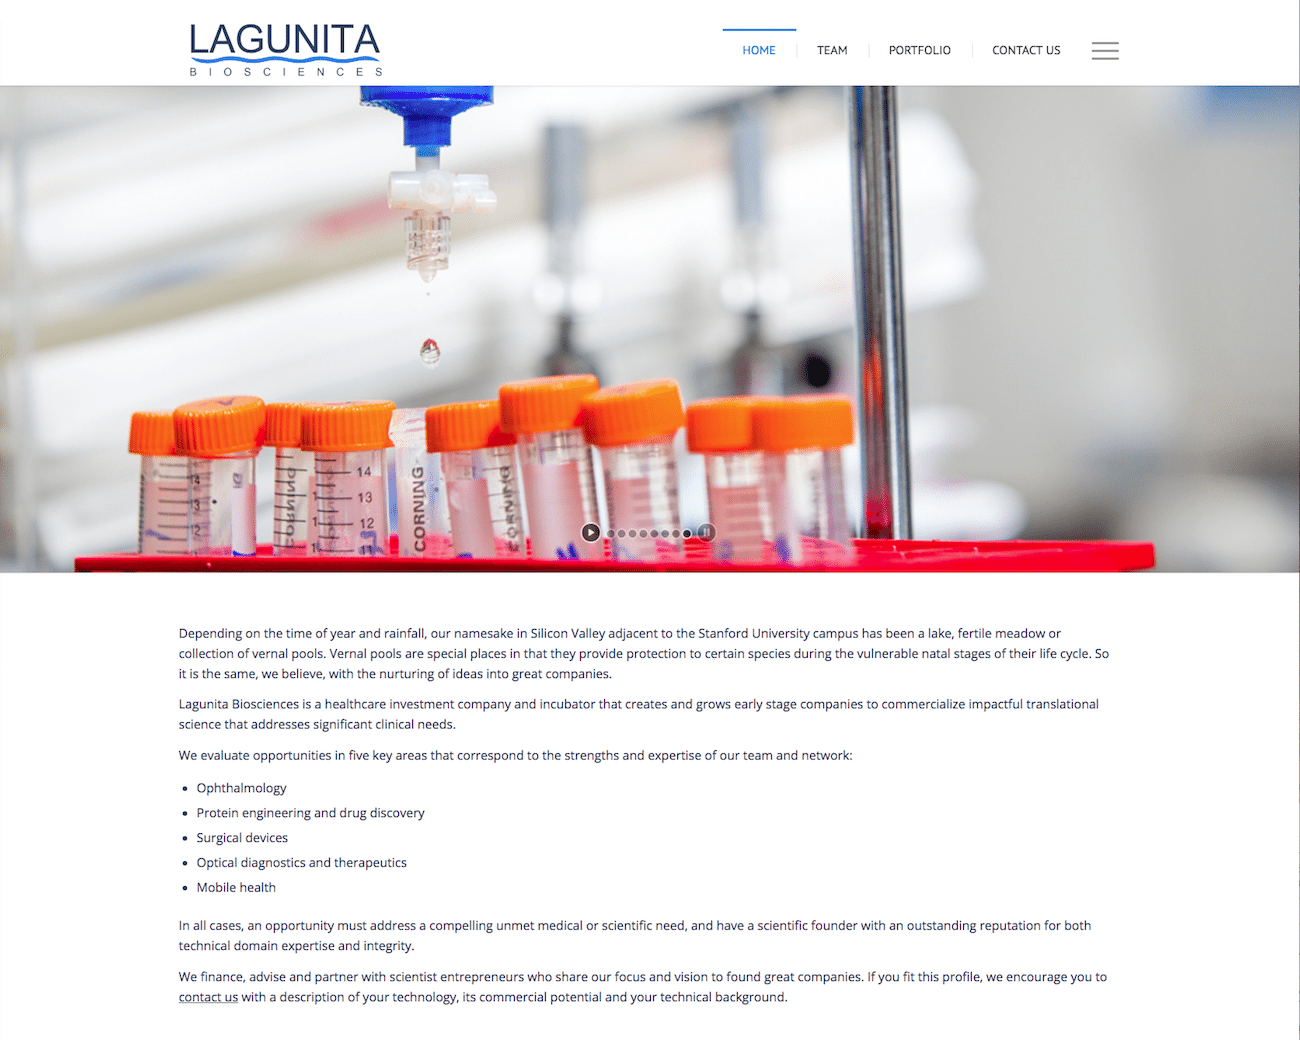 Lagunita Biosciences